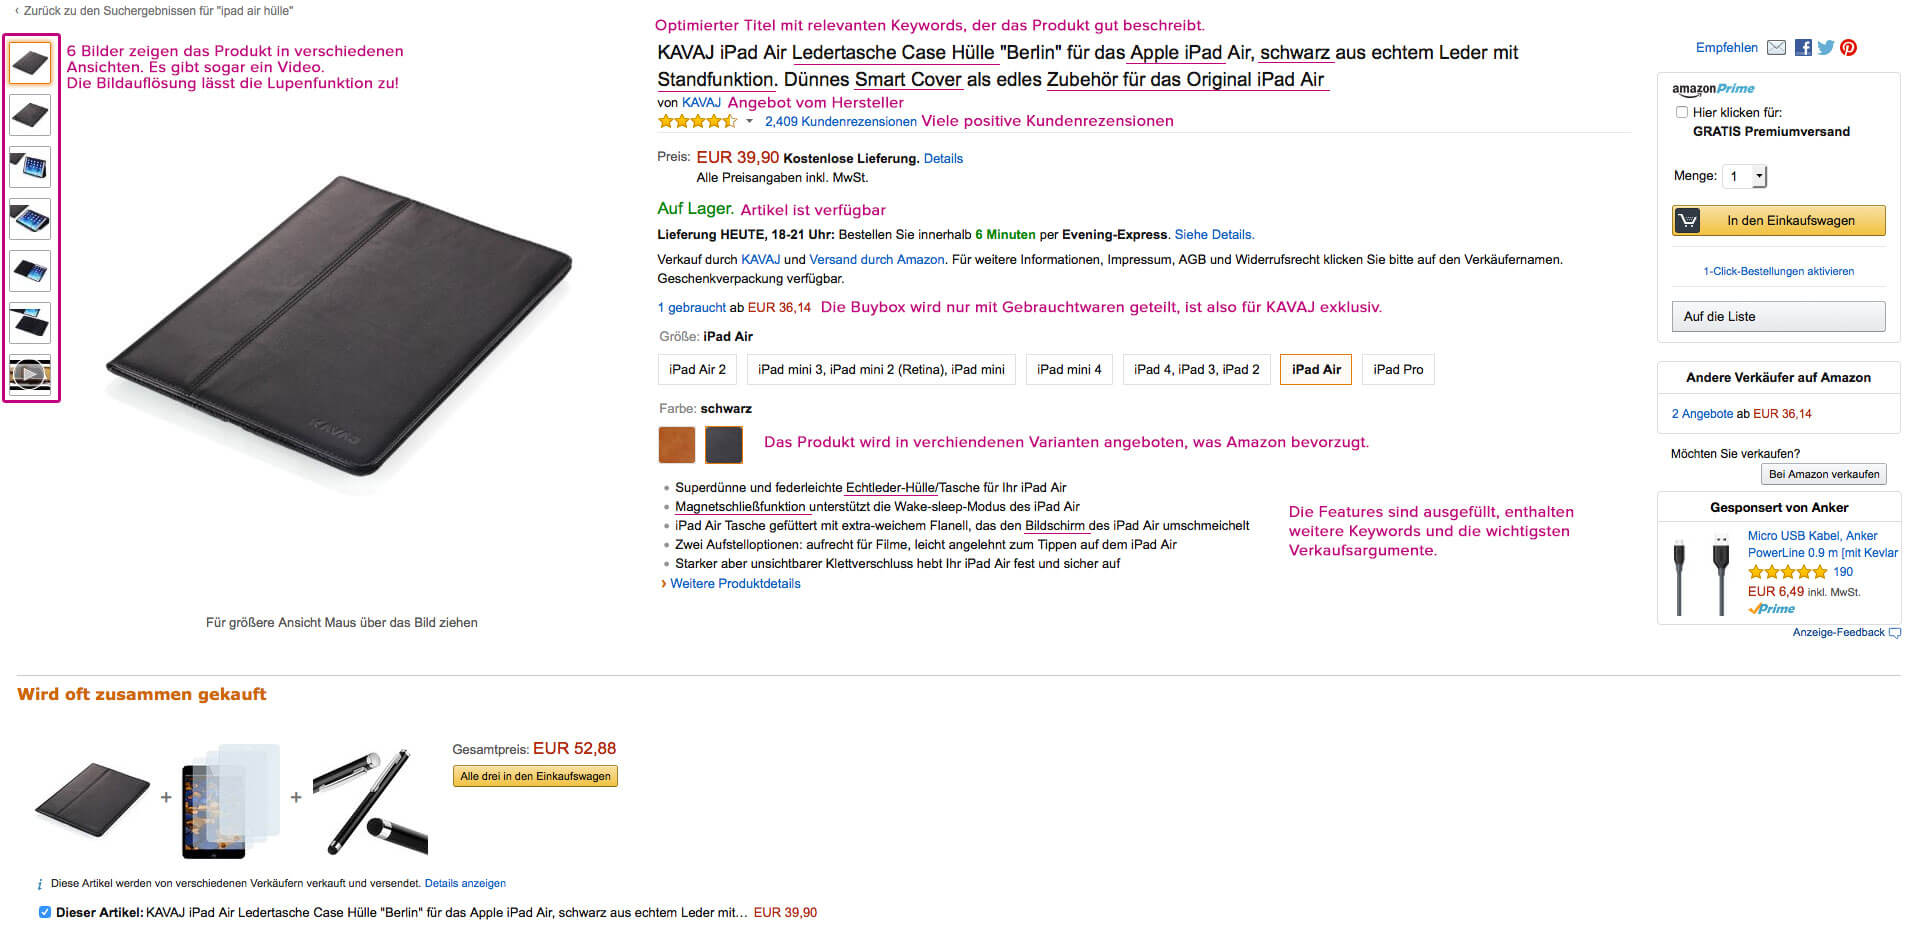 Amazon SEO - Screenshot of a product page by Kavaj in Amazon